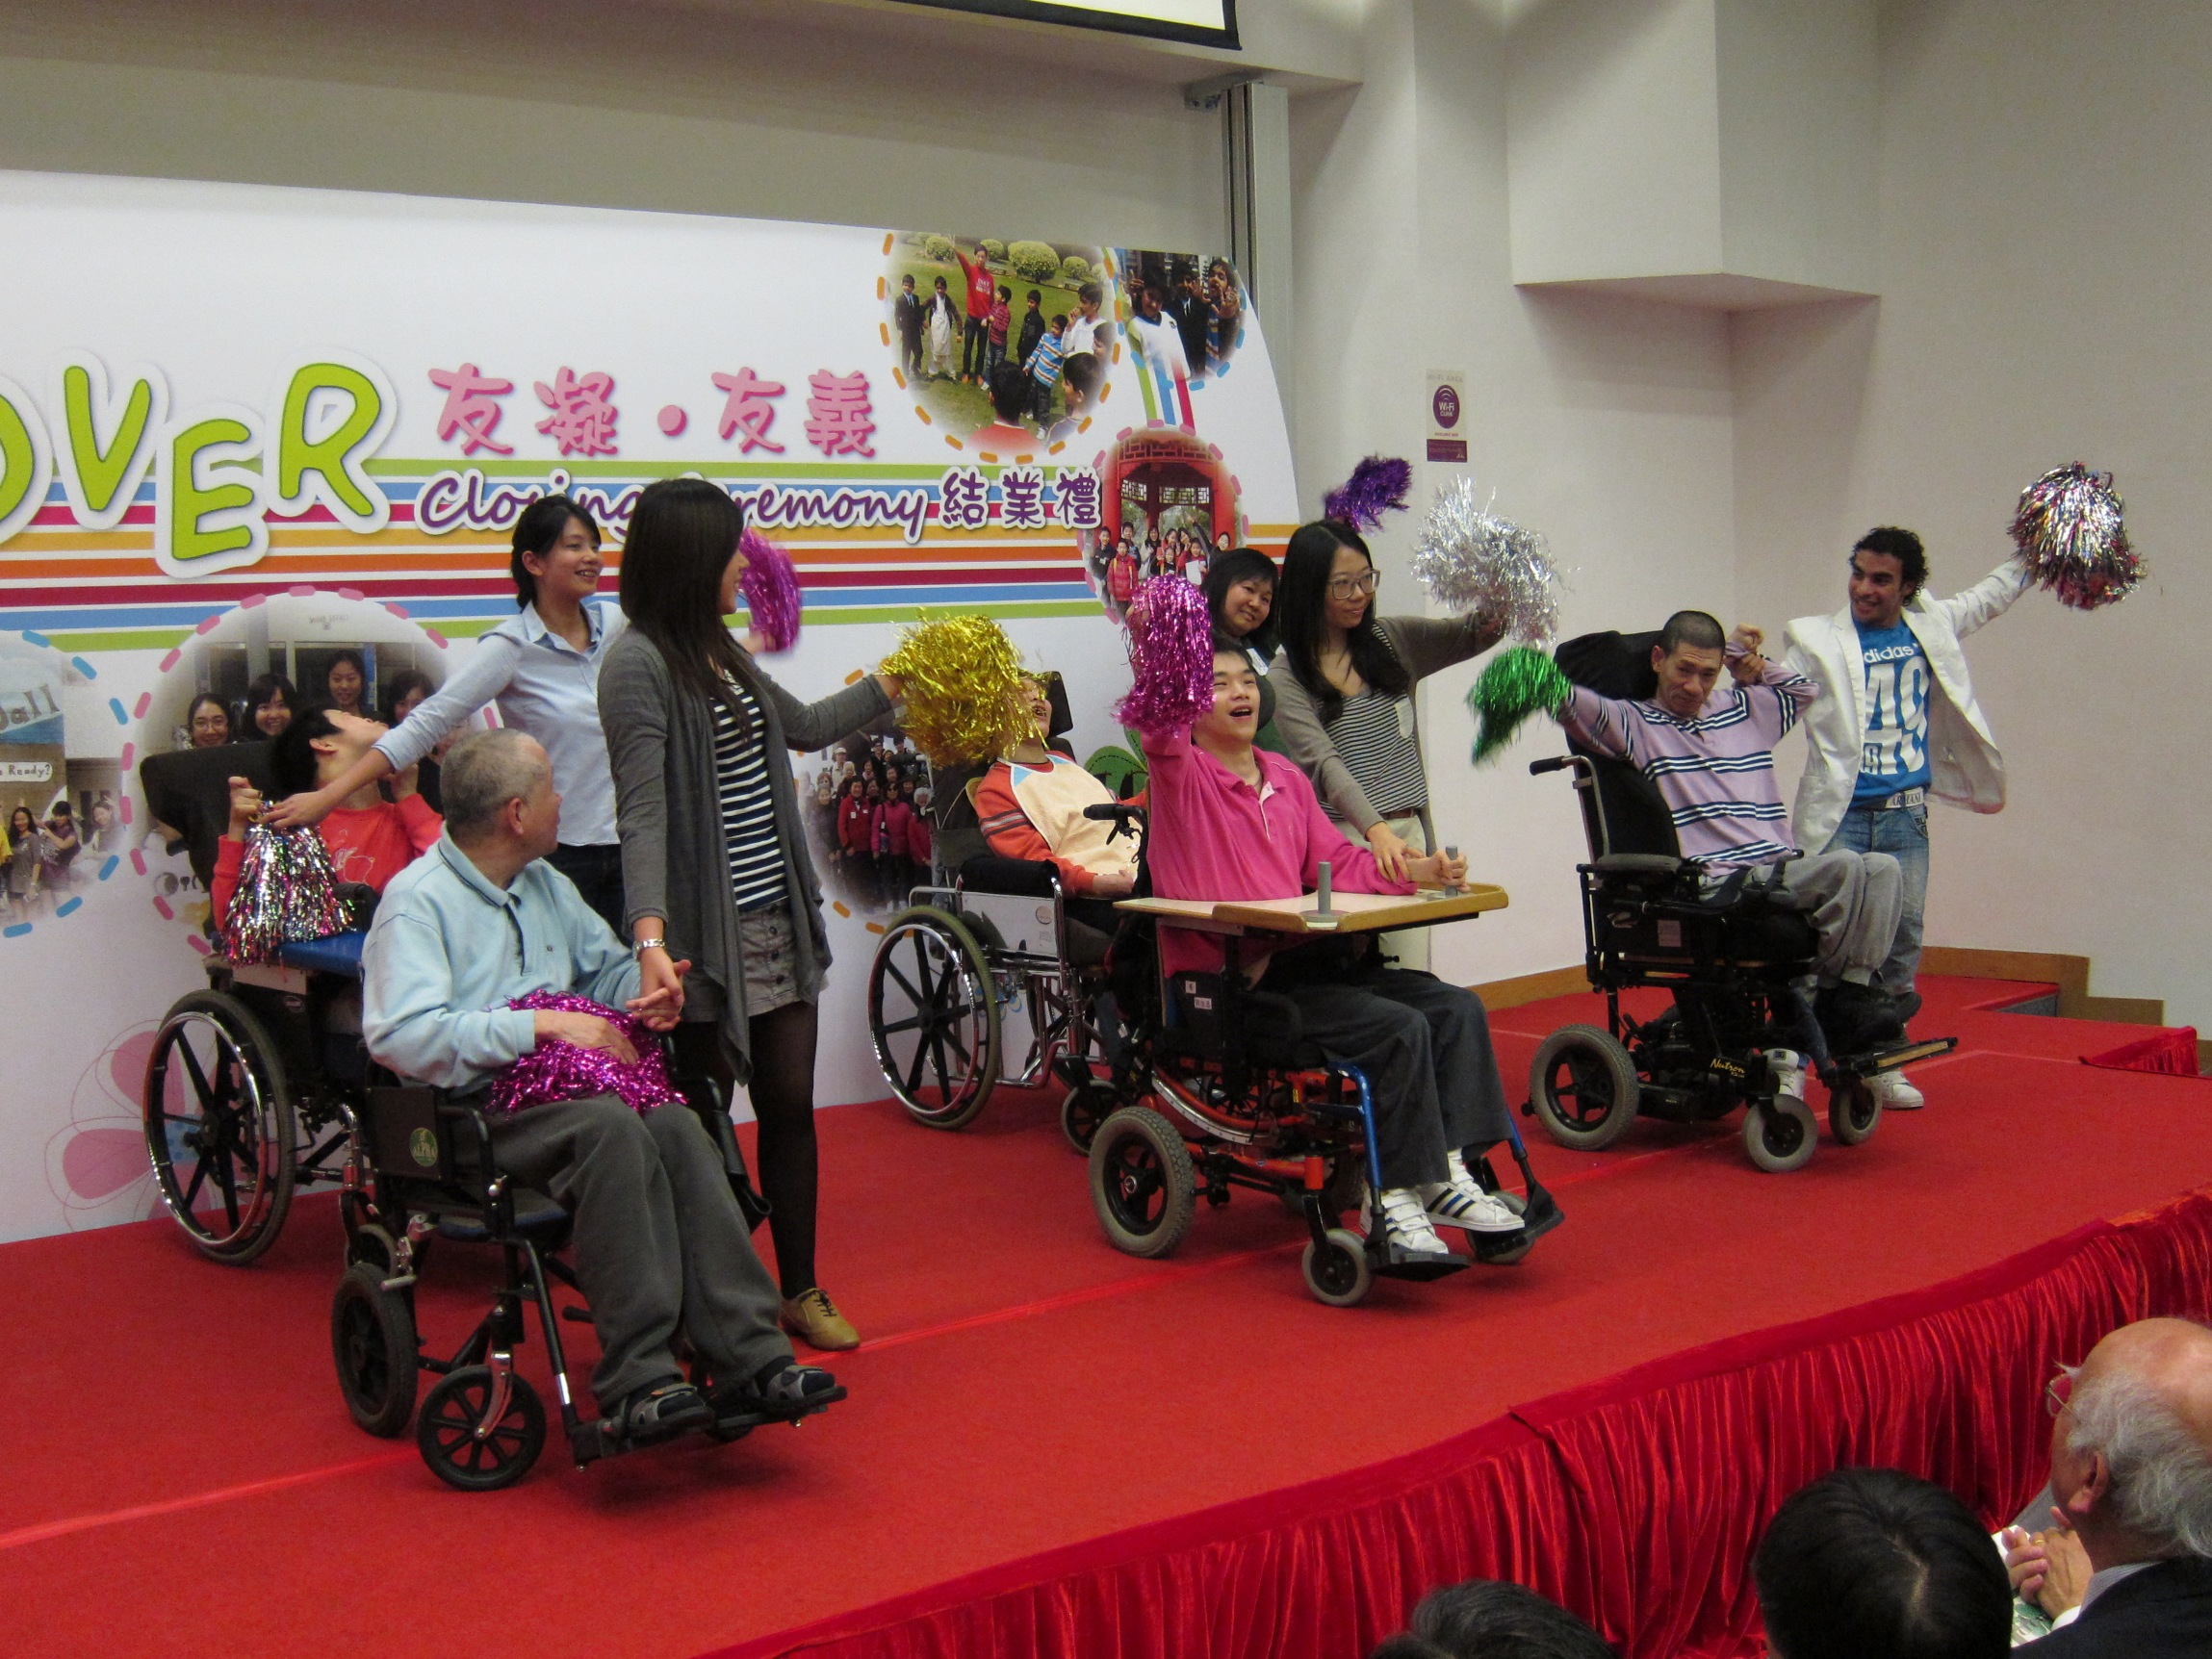 Some developmentally disabled service clients perform wheelchair dance along with CUHK students during the ceremony.